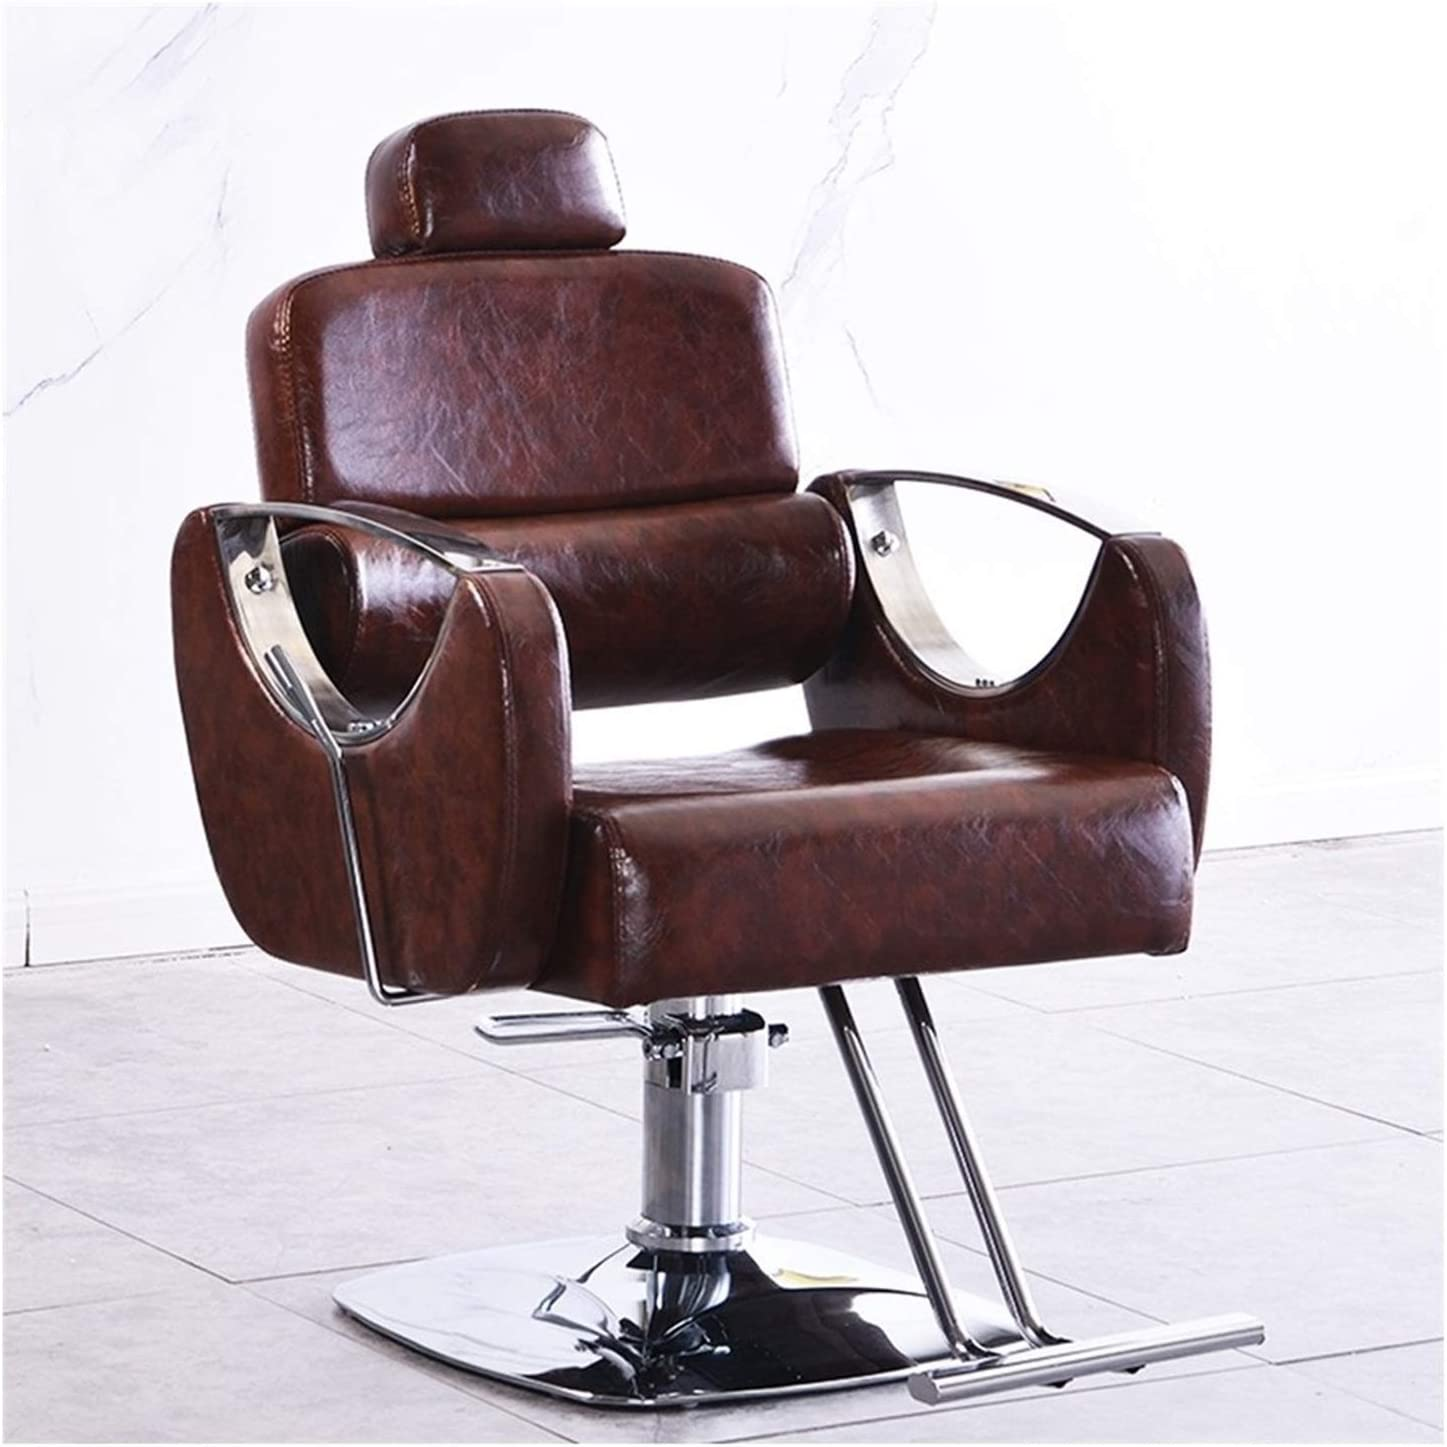 New sales LXYLXY 2021 autumn and winter new Beauty Hydraulic Barber Chairs w Chair Salon